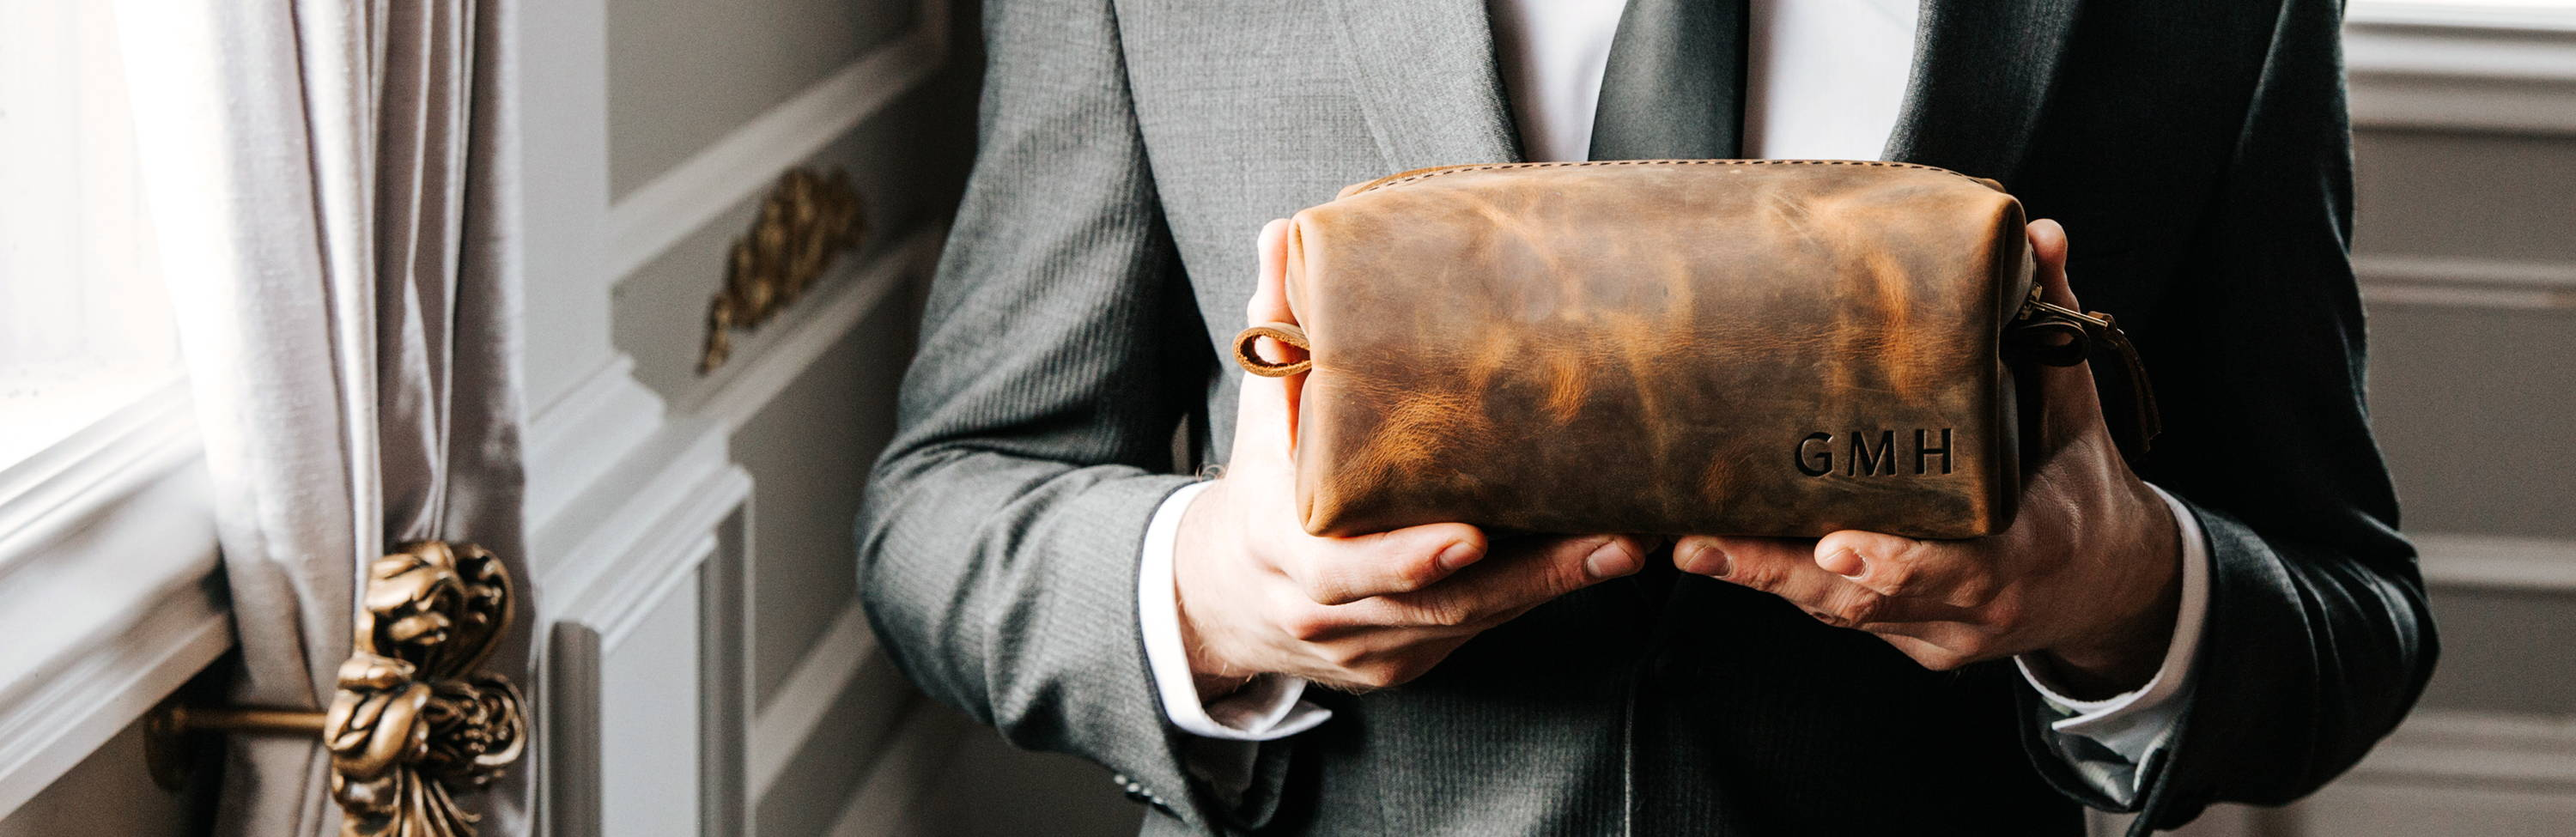 suited man holding a personalized dopp kit bag